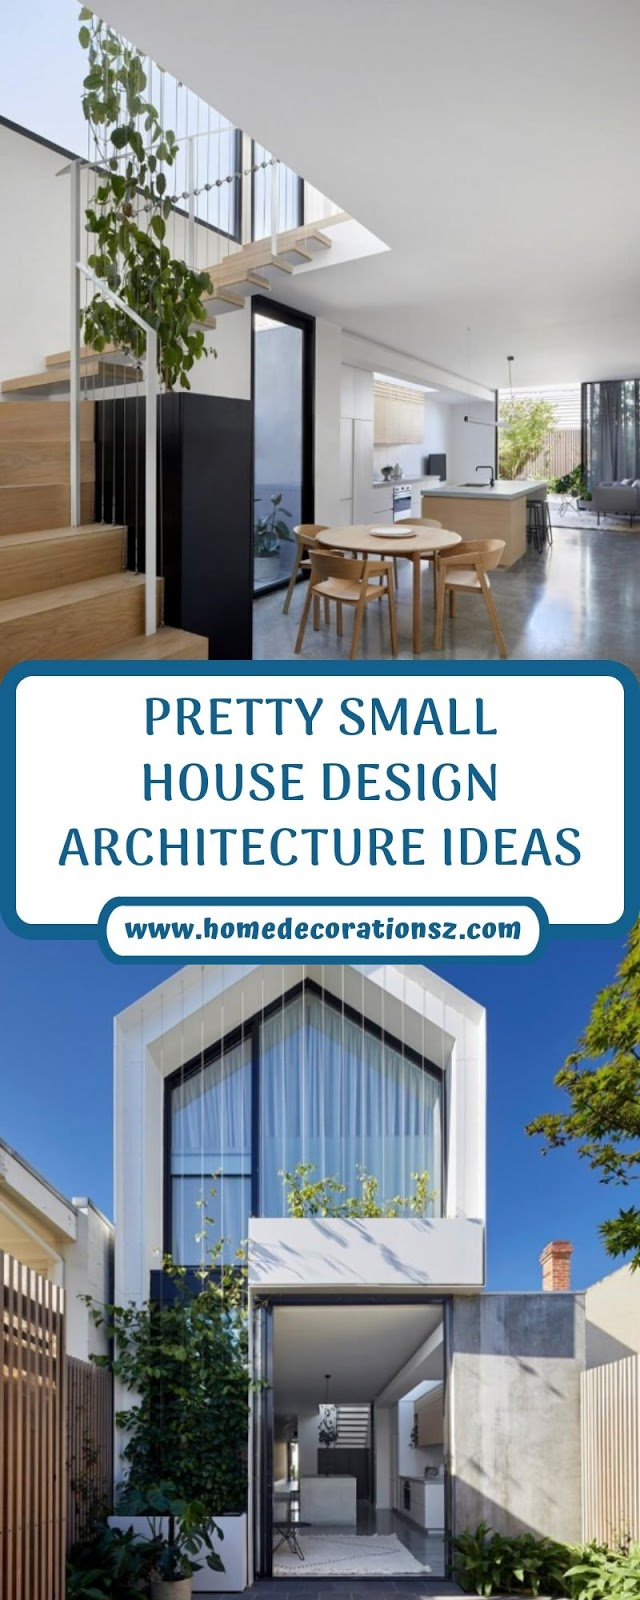 PRETTY SMALL HOUSE DESIGN ARCHITECTURE IDEAS